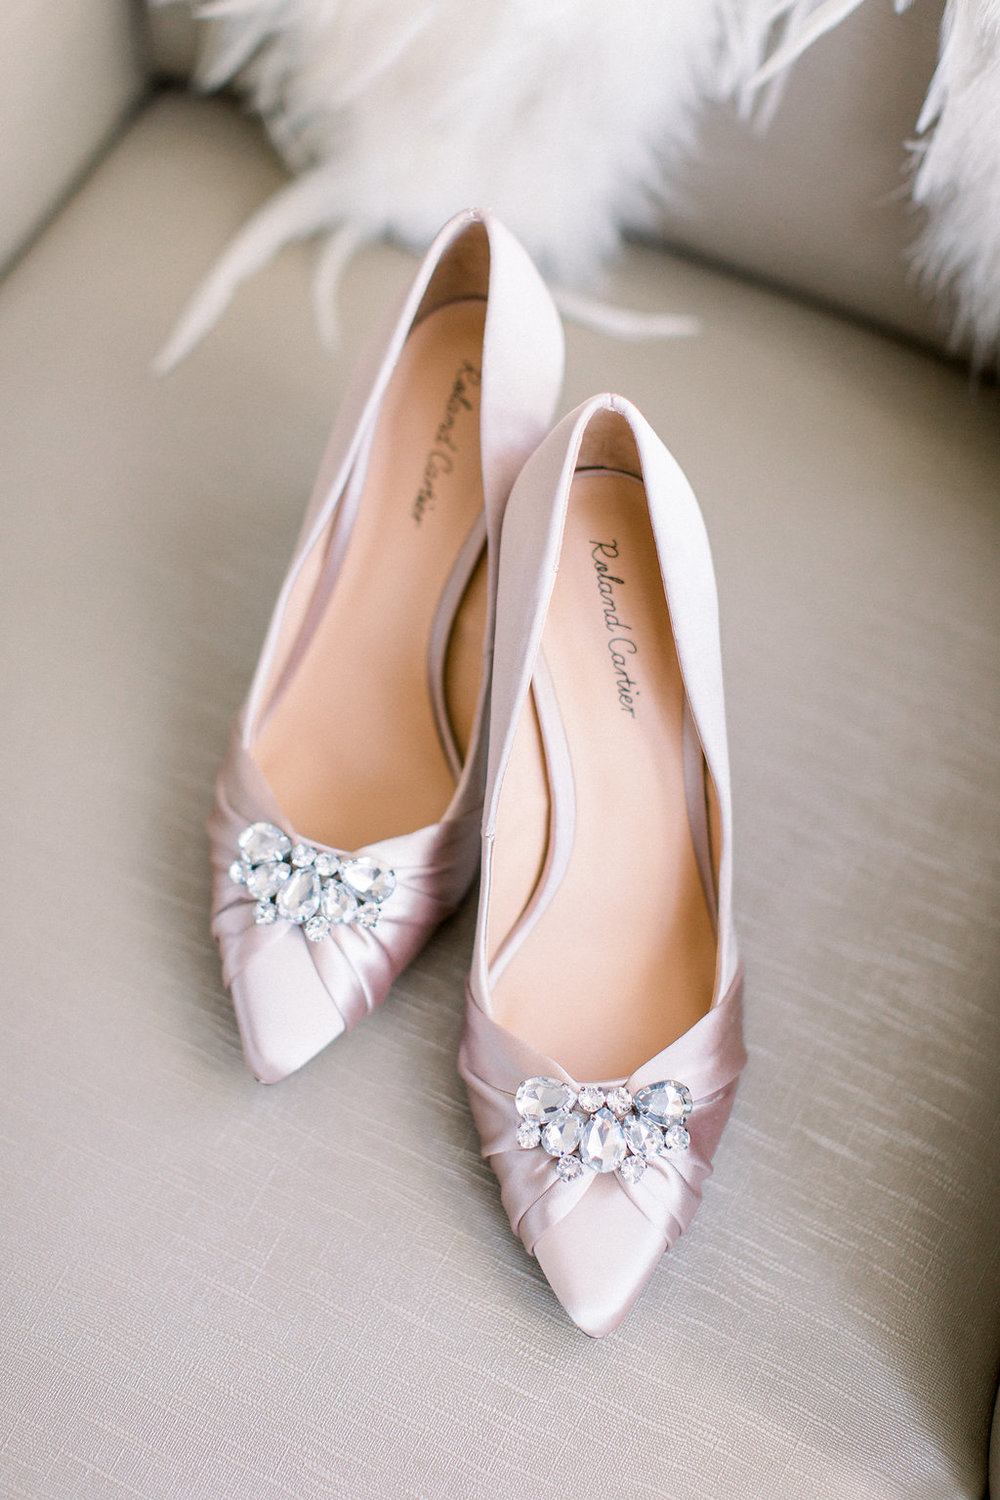 Light pink wedding shoes.